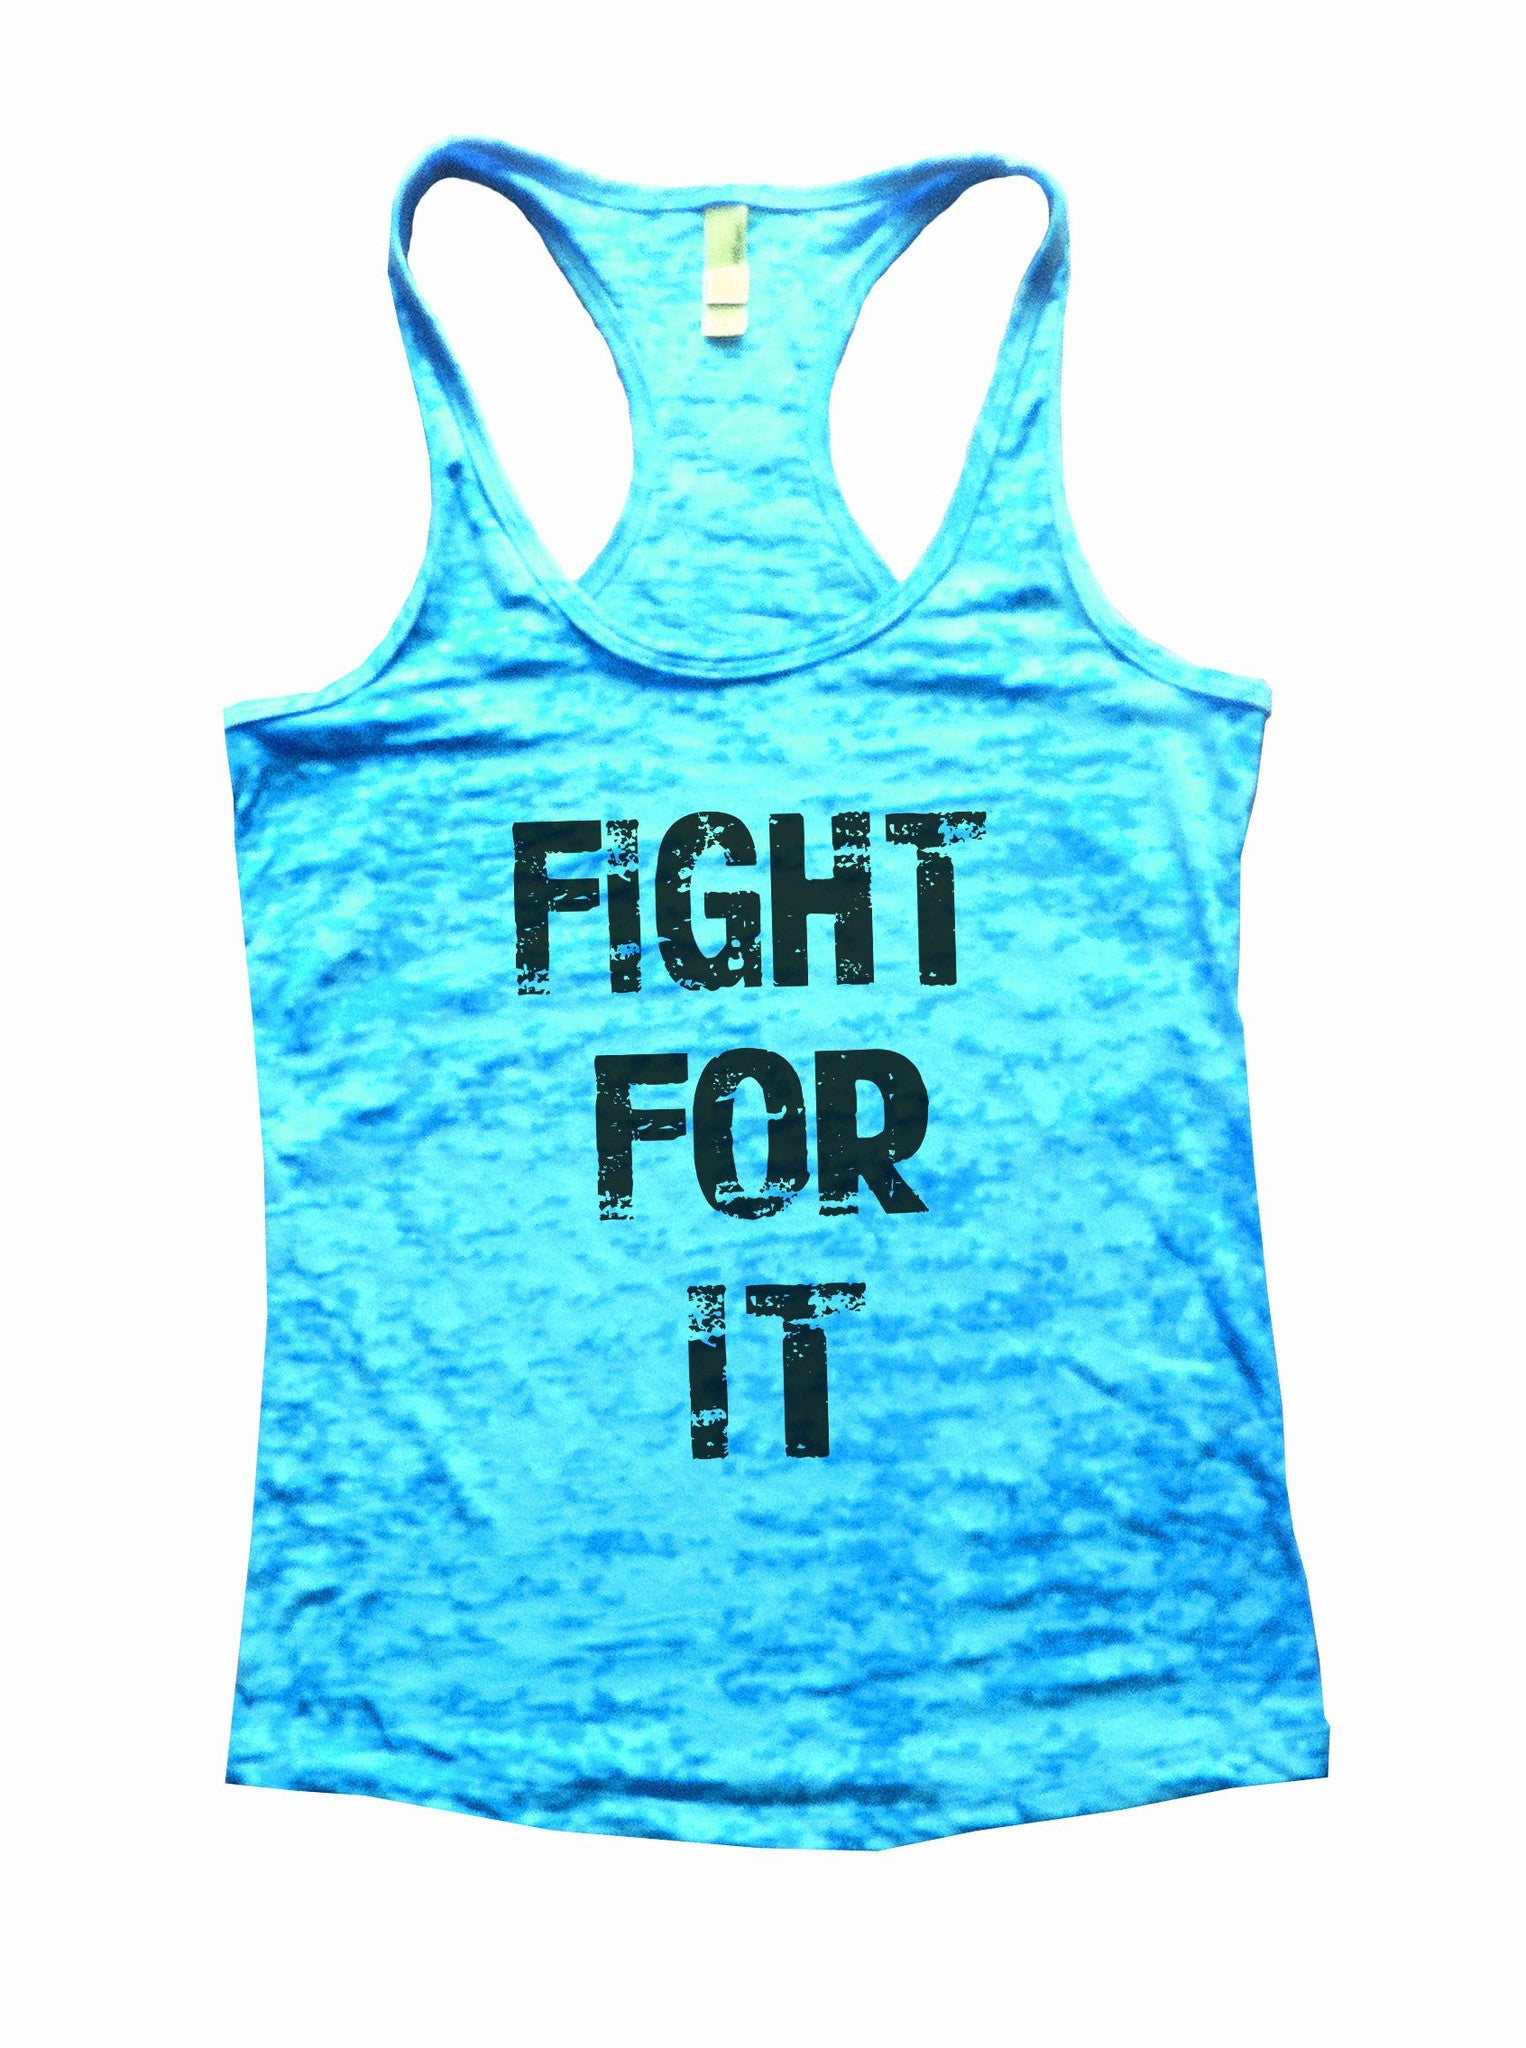 Fight For It Burnout Tank Top By BurnoutTankTops.com - 689 - Funny Shirts Tank Tops Burnouts and Triblends  - 1